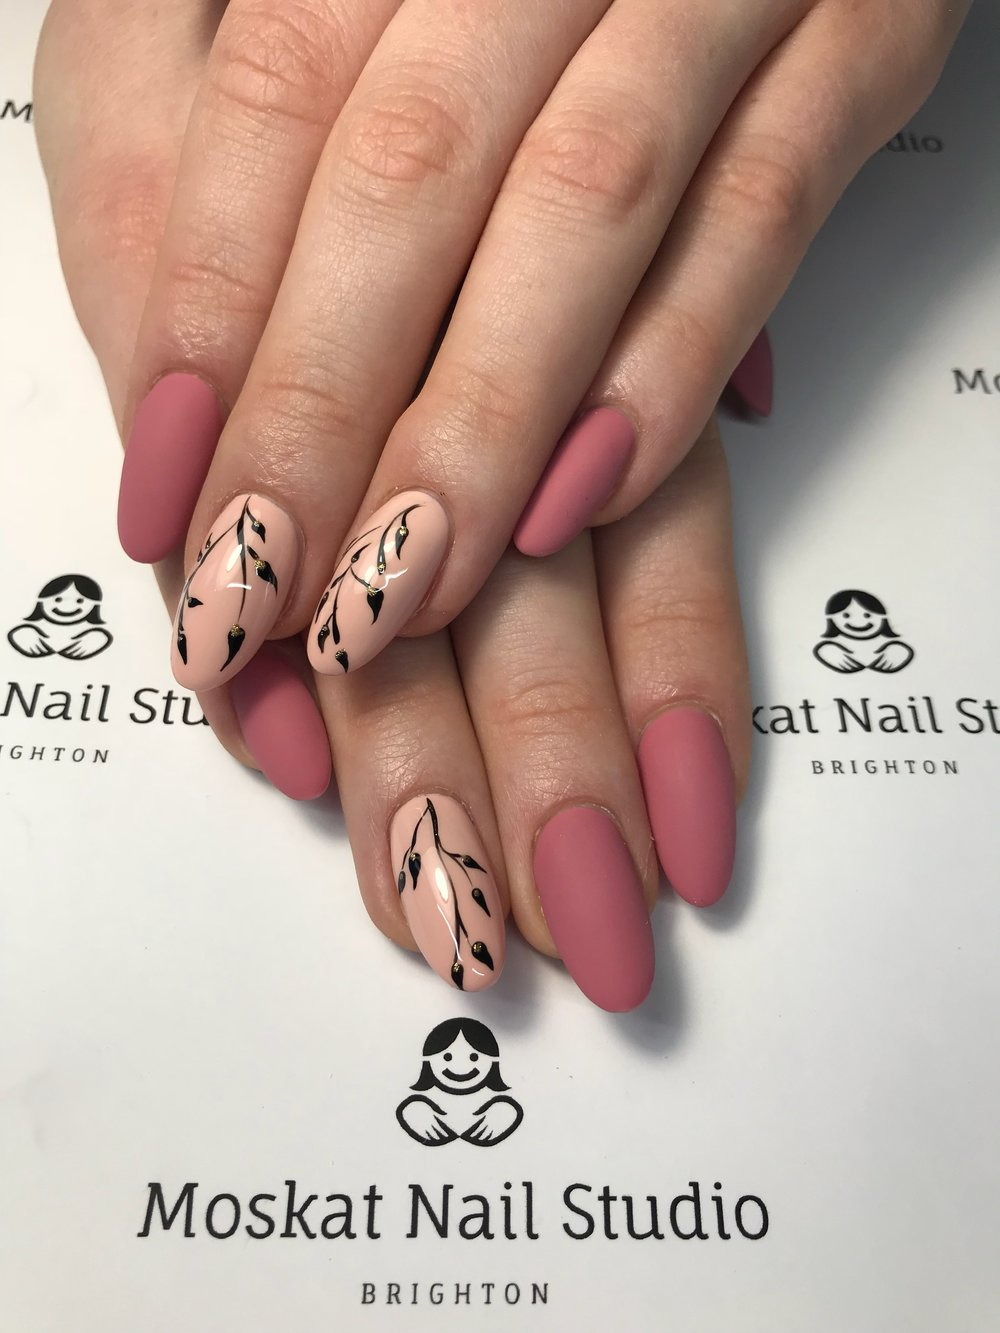 Acrylic, Gel & PolyGel Nails in Brighton — Moskat Nail Studio